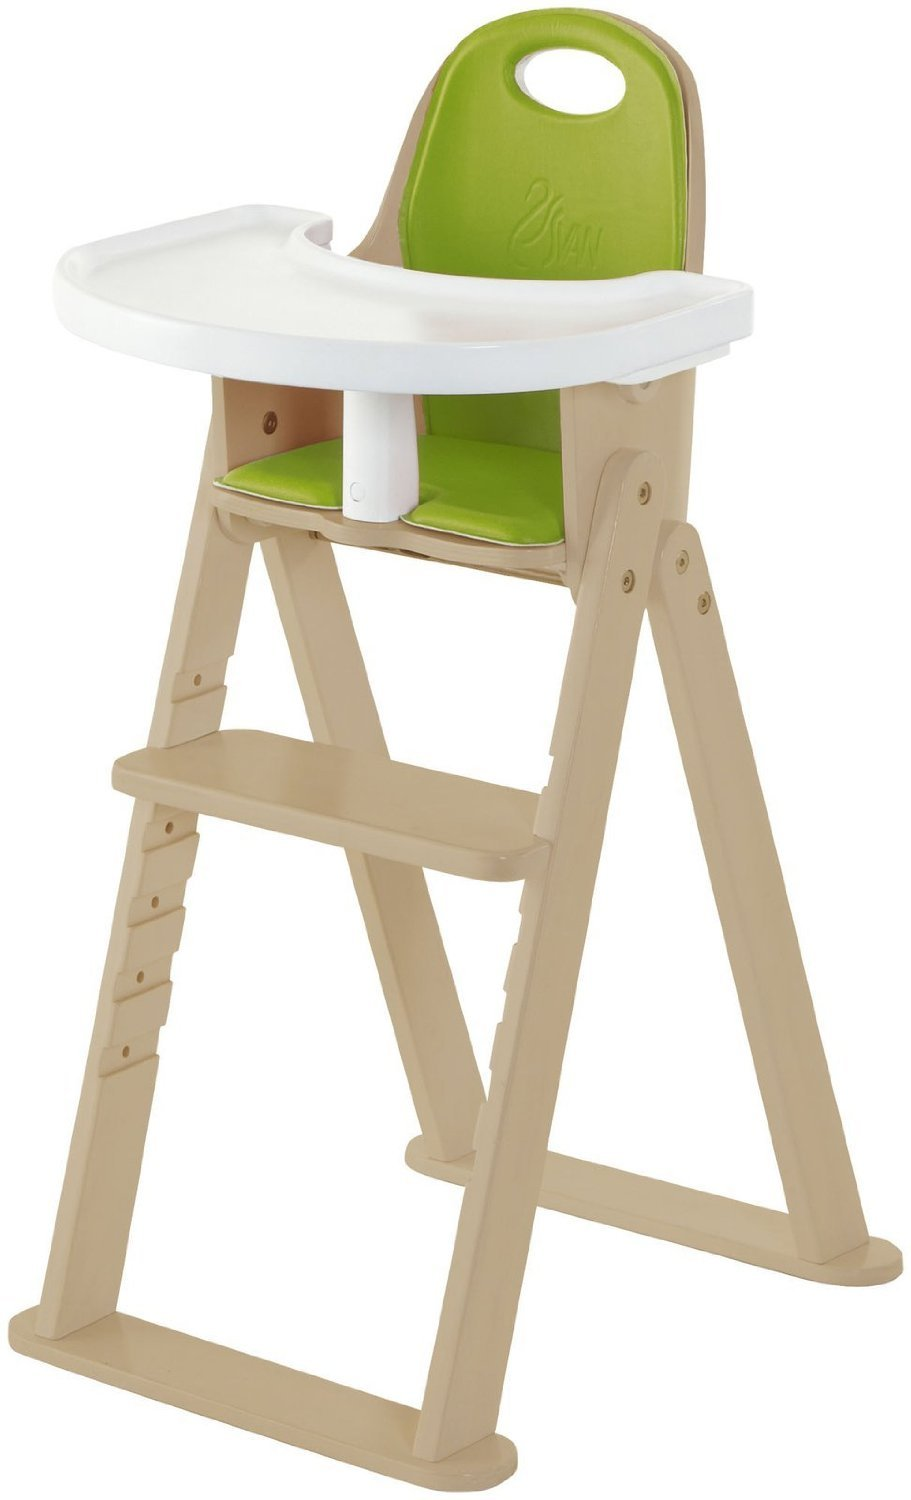 Amazon.com  High Chair - Award Winning Svan Baby to Booster Bentwood Folding Chair with Removable Cushion (6 months - 5 years) (Natural)  Childrens ...  sc 1 st  Amazon.com & Amazon.com : High Chair - Award Winning Svan Baby to Booster ...